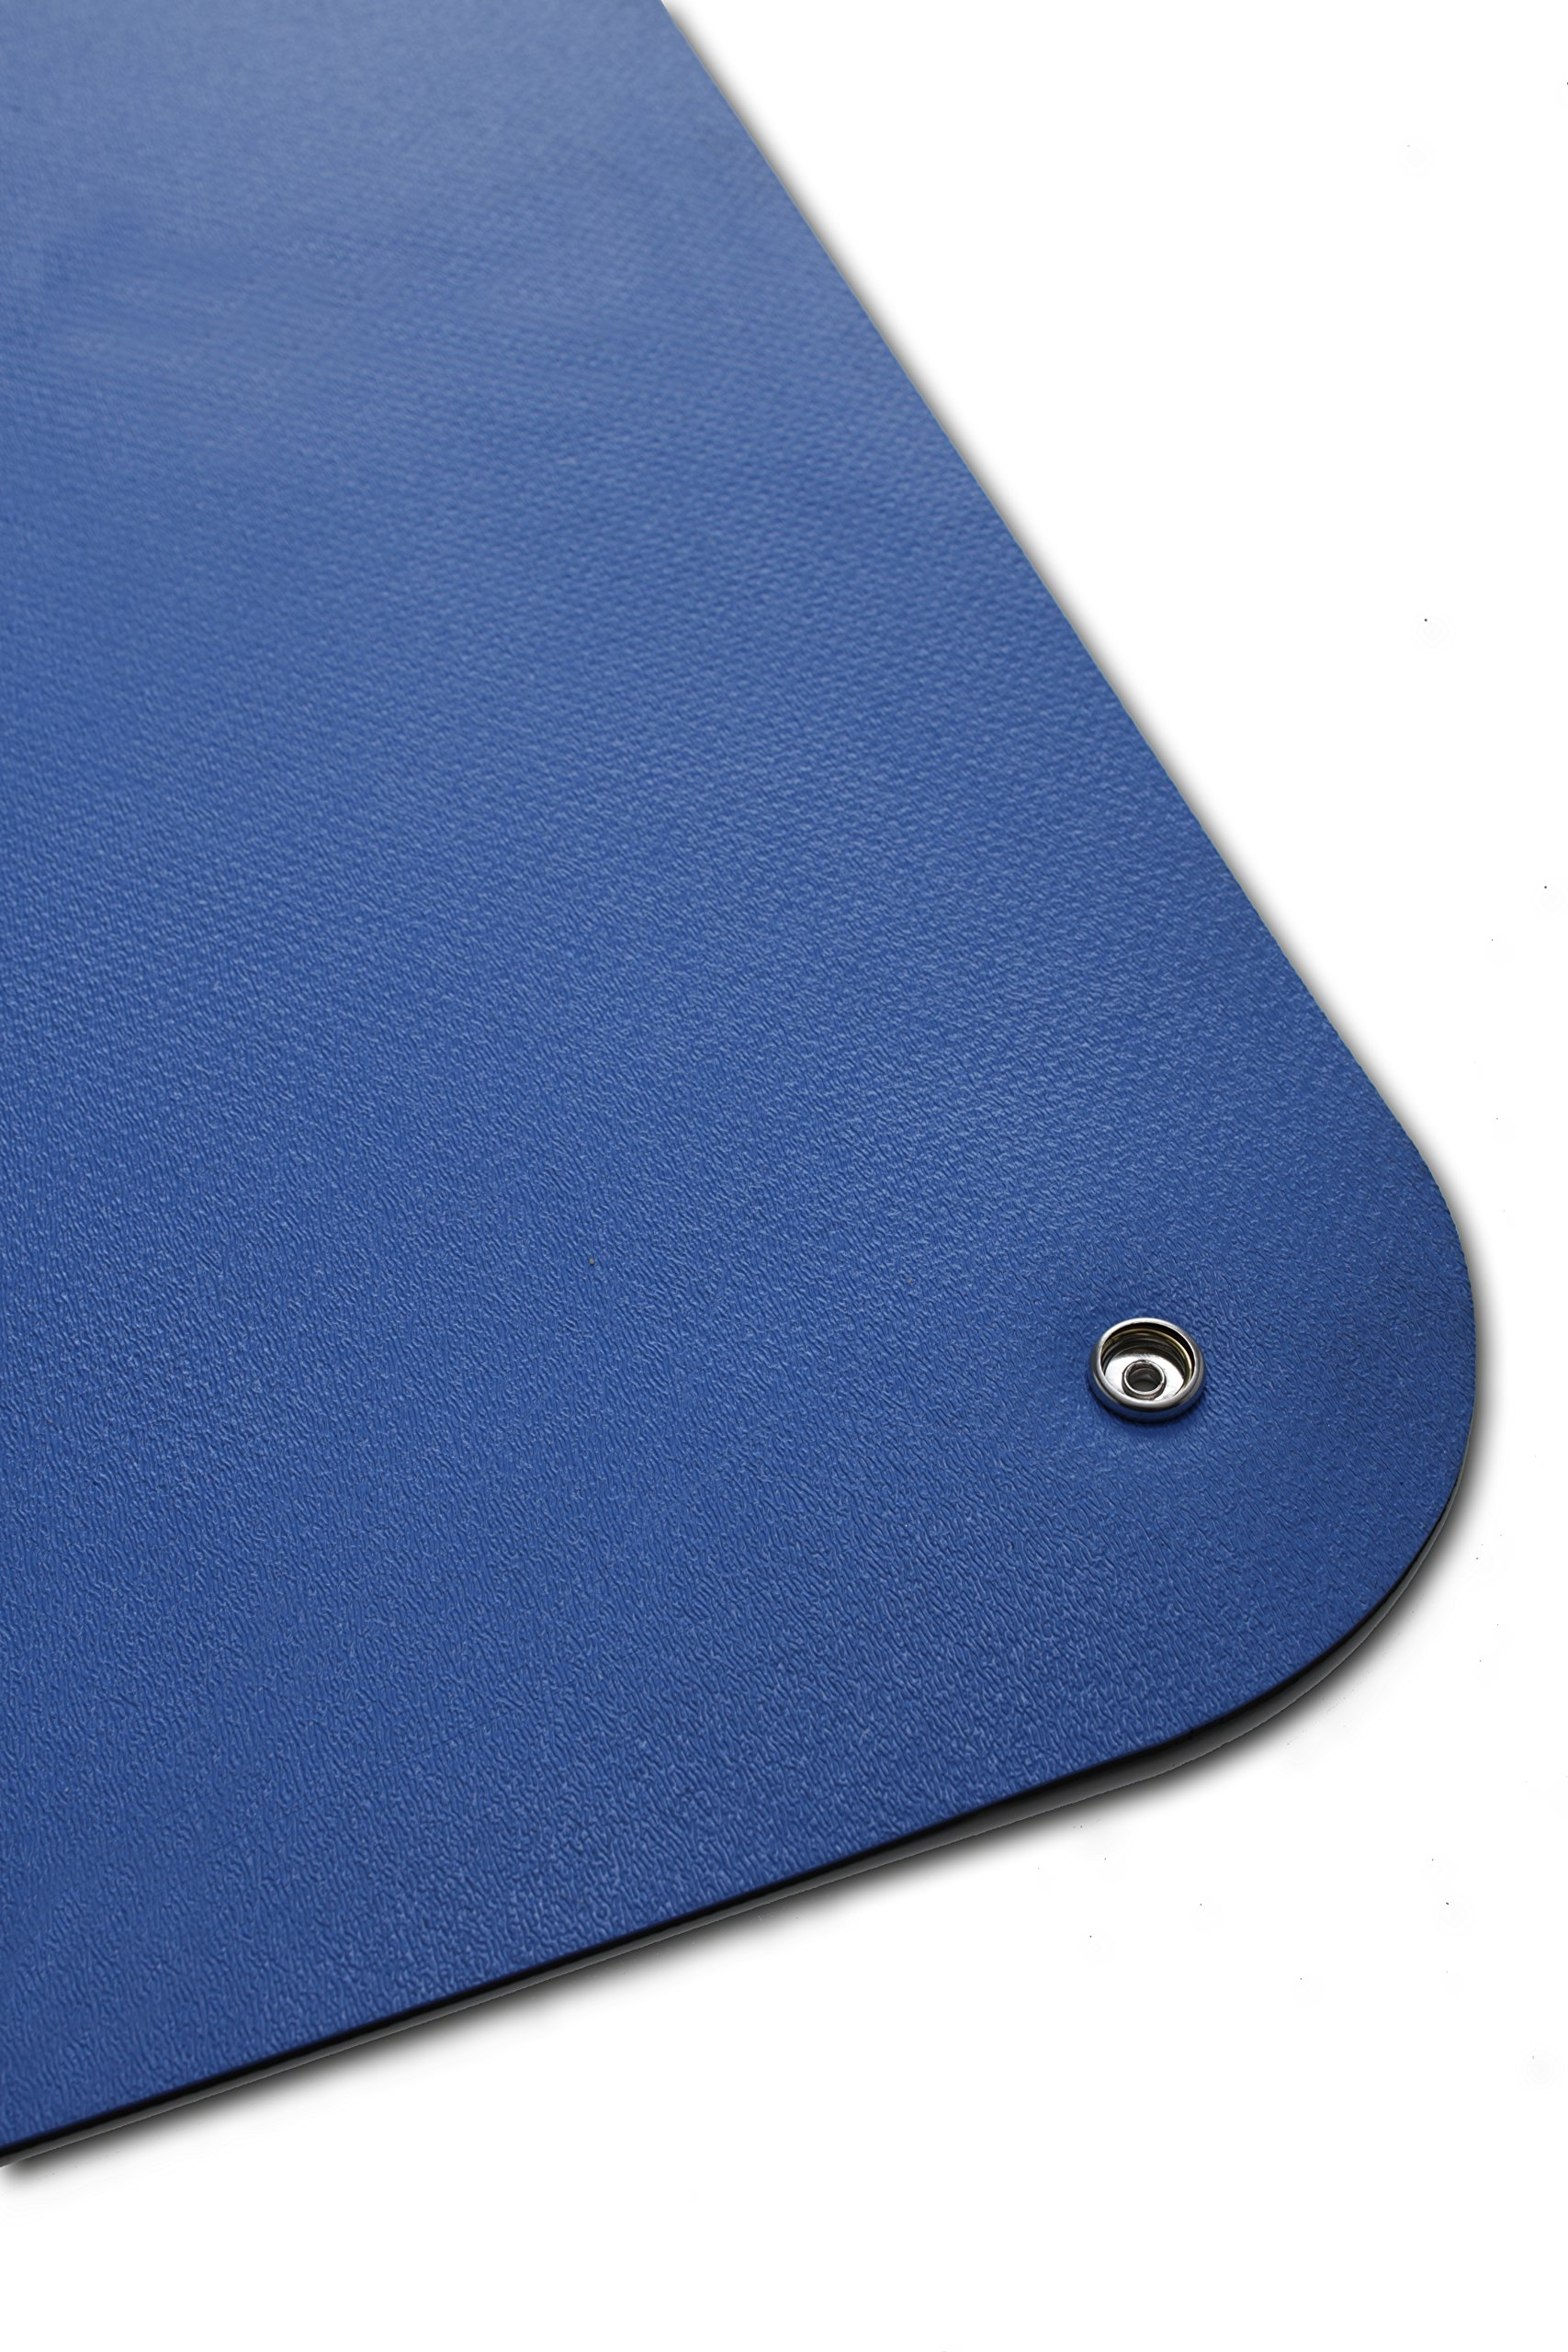 Guardian ESDMATBLUESL2X3 Electro Guard ESD Mat, Single Layer, Dissipates Static INHERENTLY from Work Surfaces and Personnel Quickly and Safely, Rubber, 2' x 3', Blue by Guardian (Image #4)